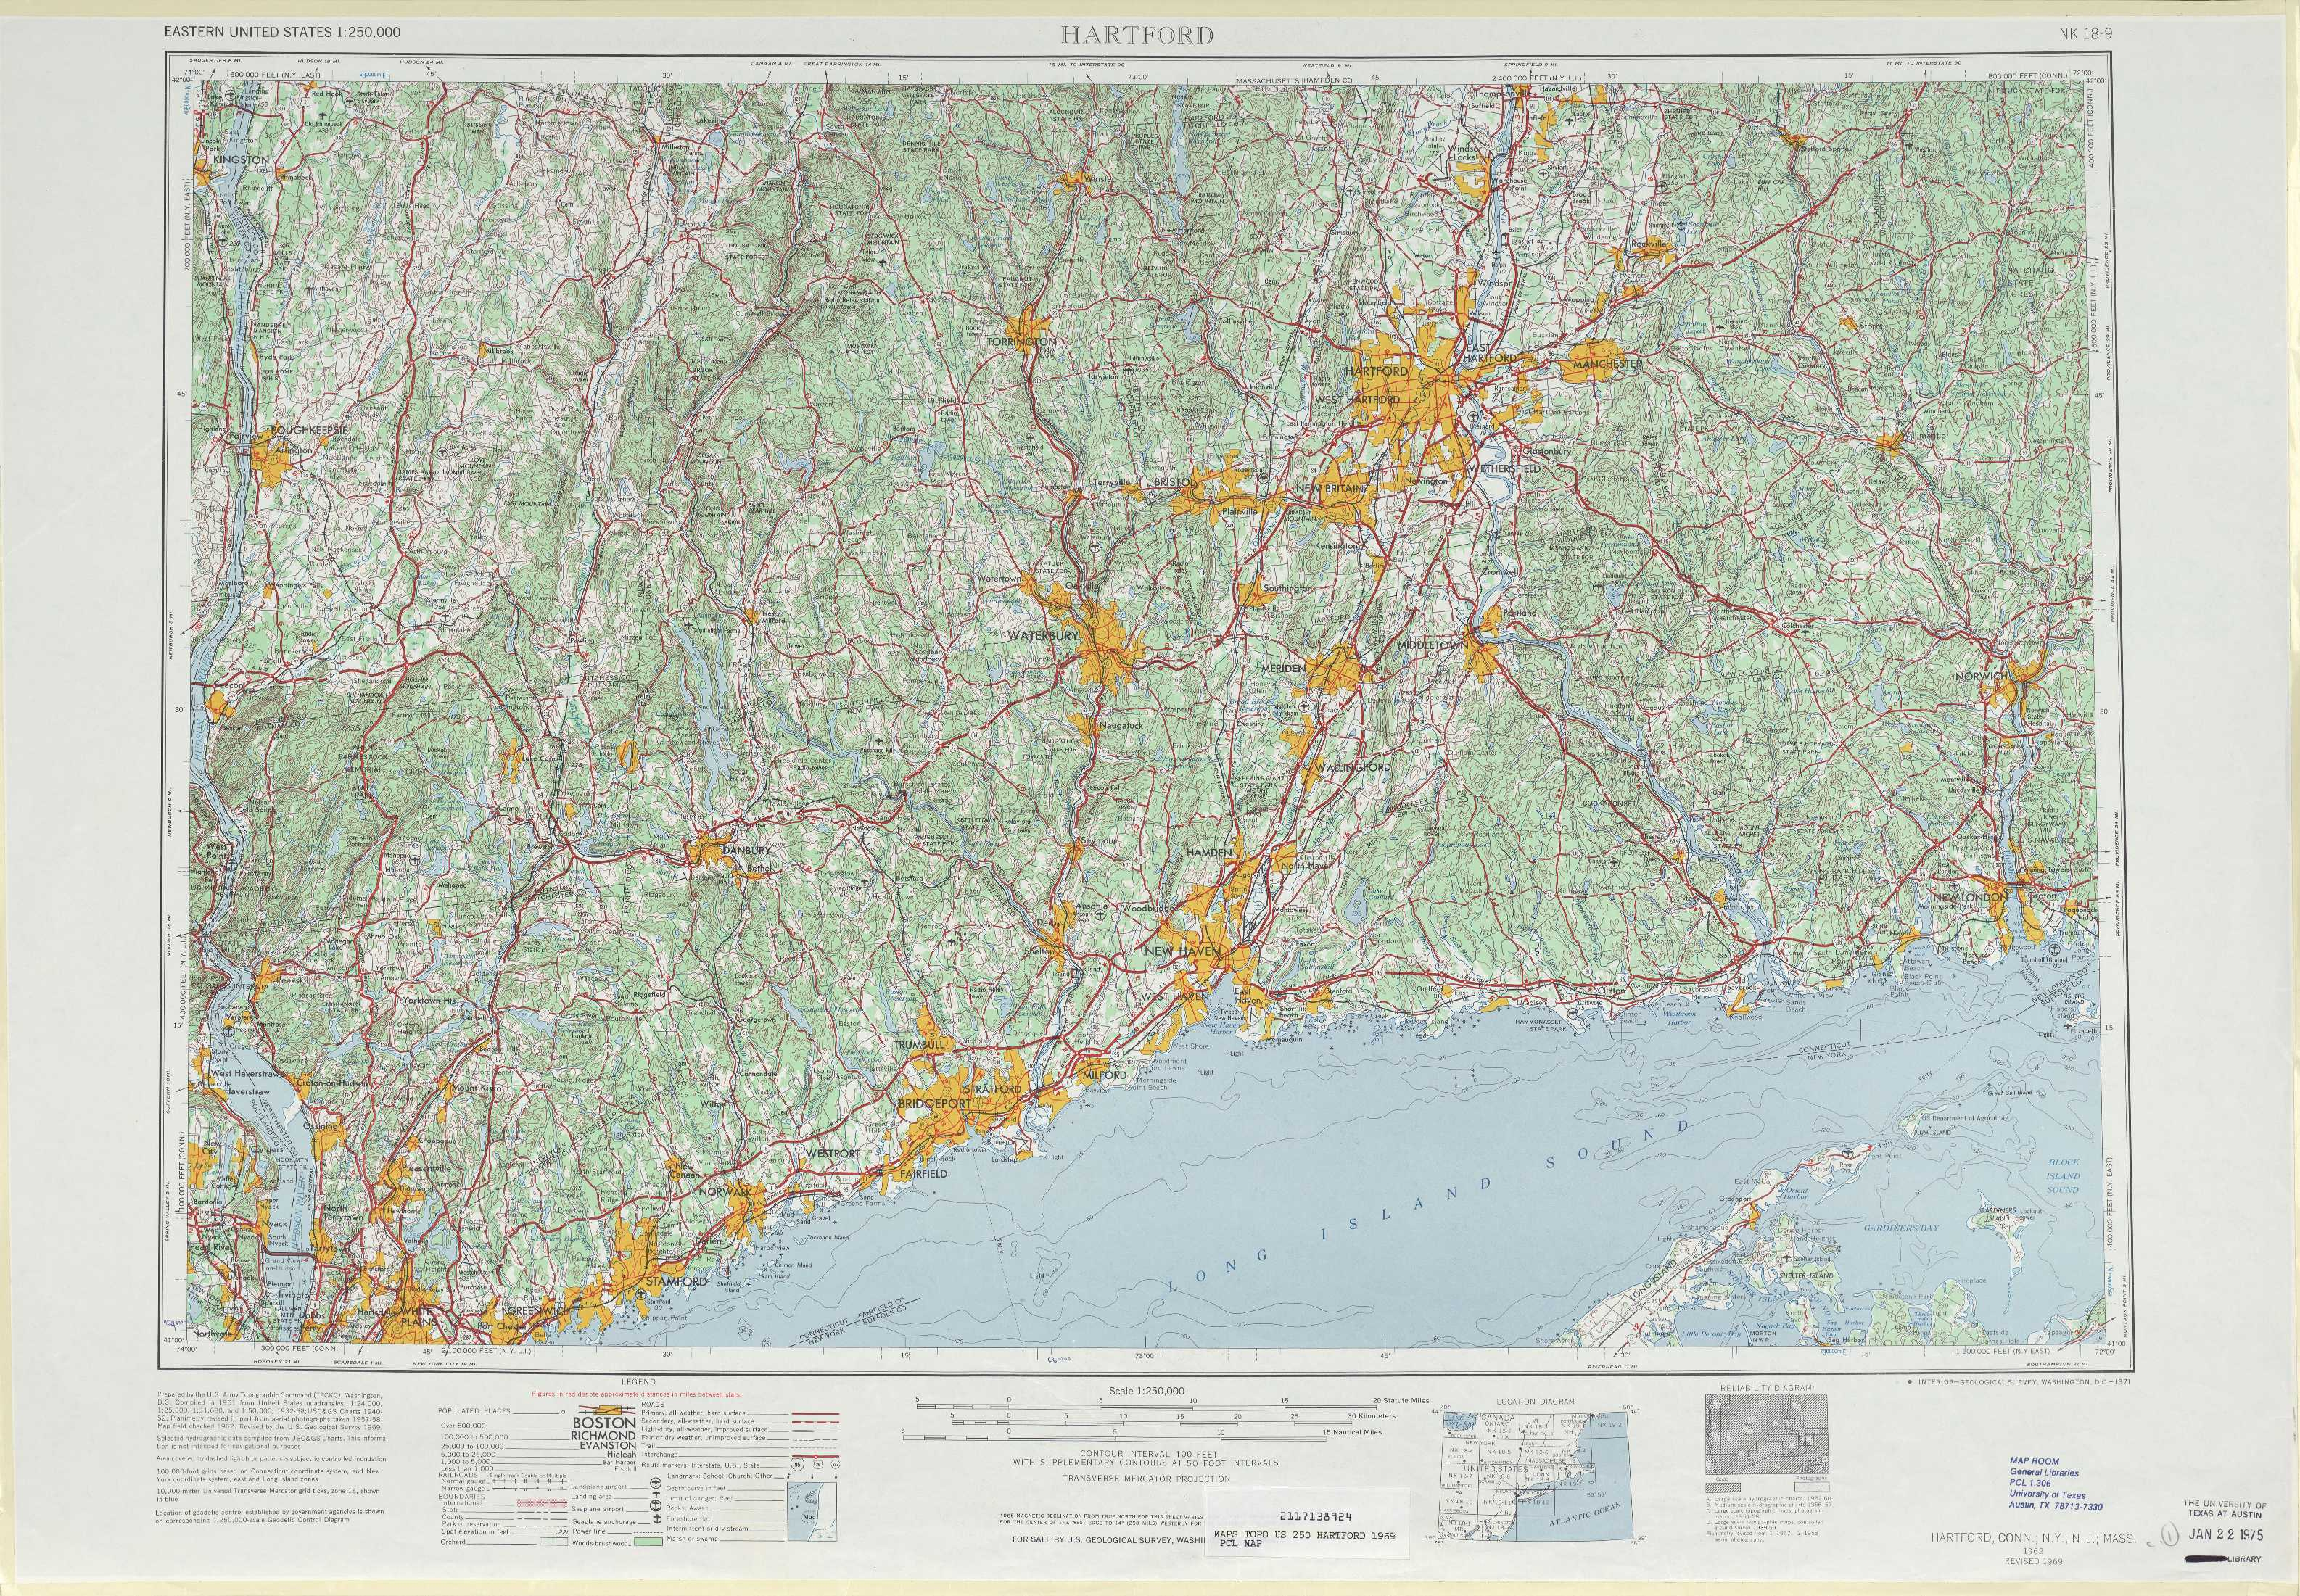 Hartford topographic maps, CT, NY   USGS Topo Quad 41072a1 at 1